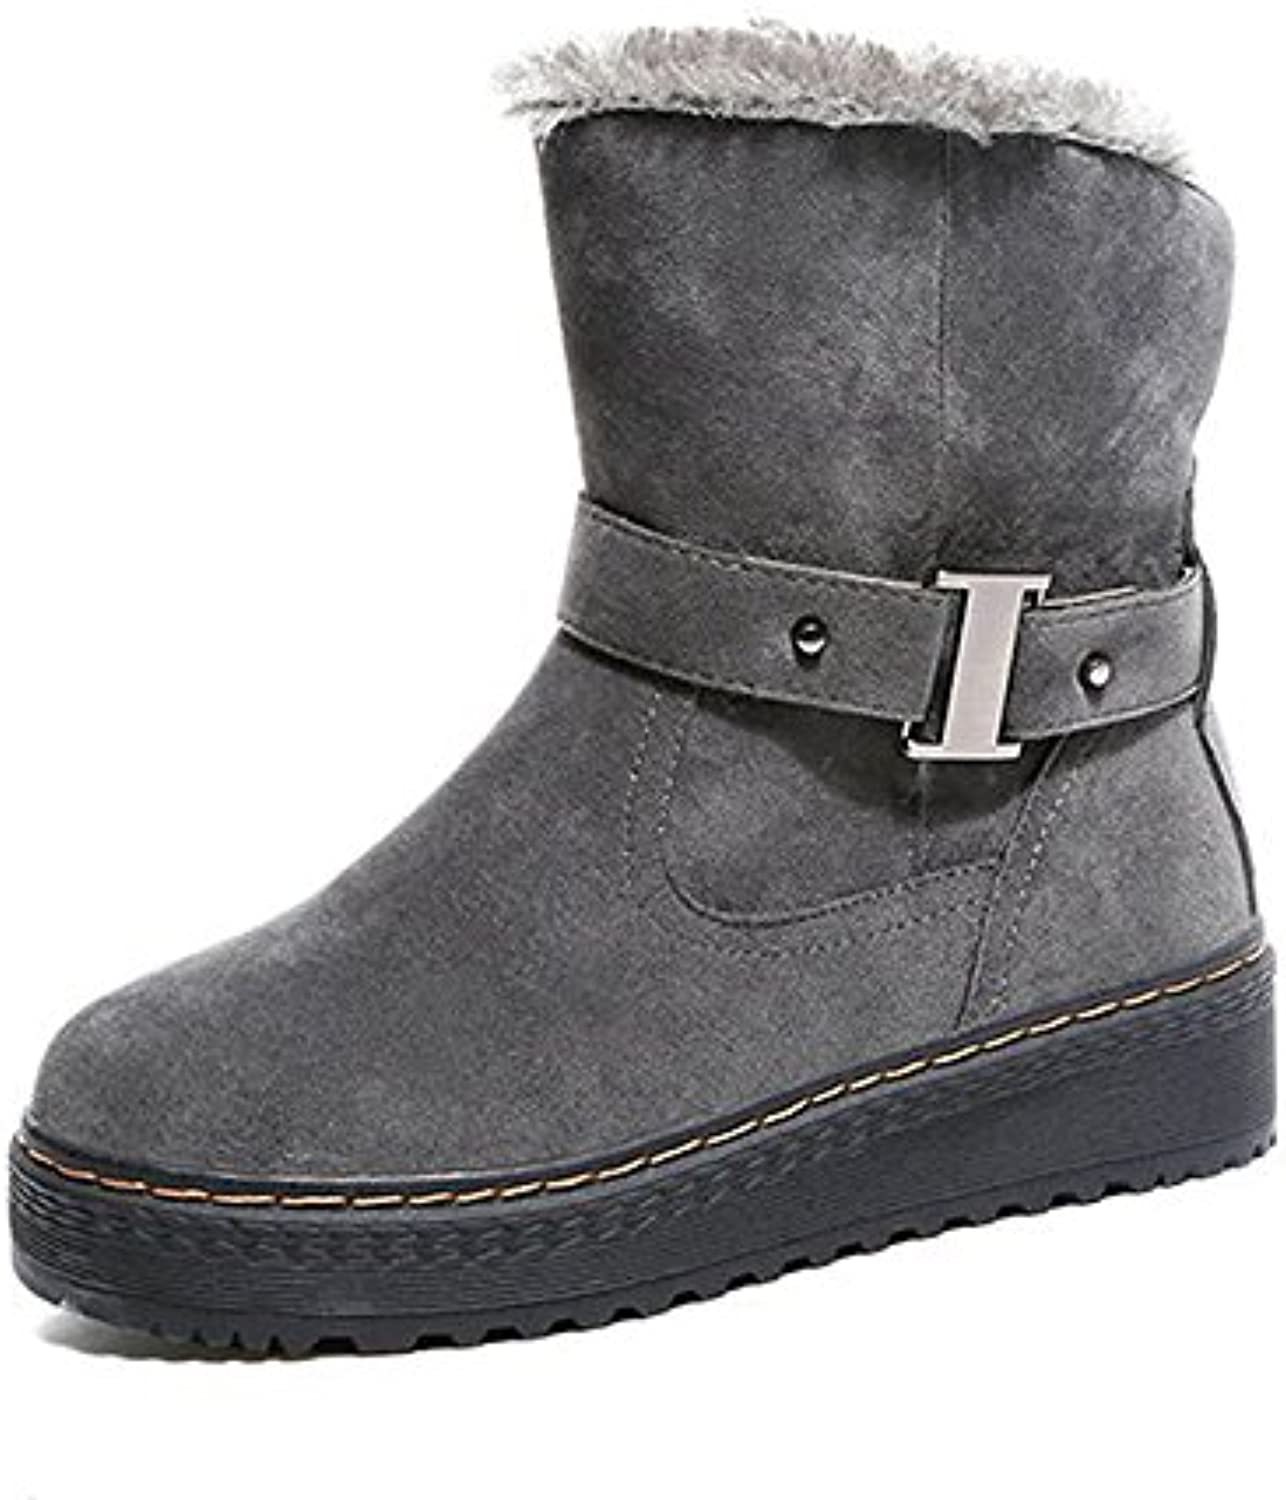 HSXZ Women's shoes Nubuck leather Fleece Winter Spring Snow Boots Bootie Boots Creepers Round Toe Closed Toe Booties Ankle Boots for Casual